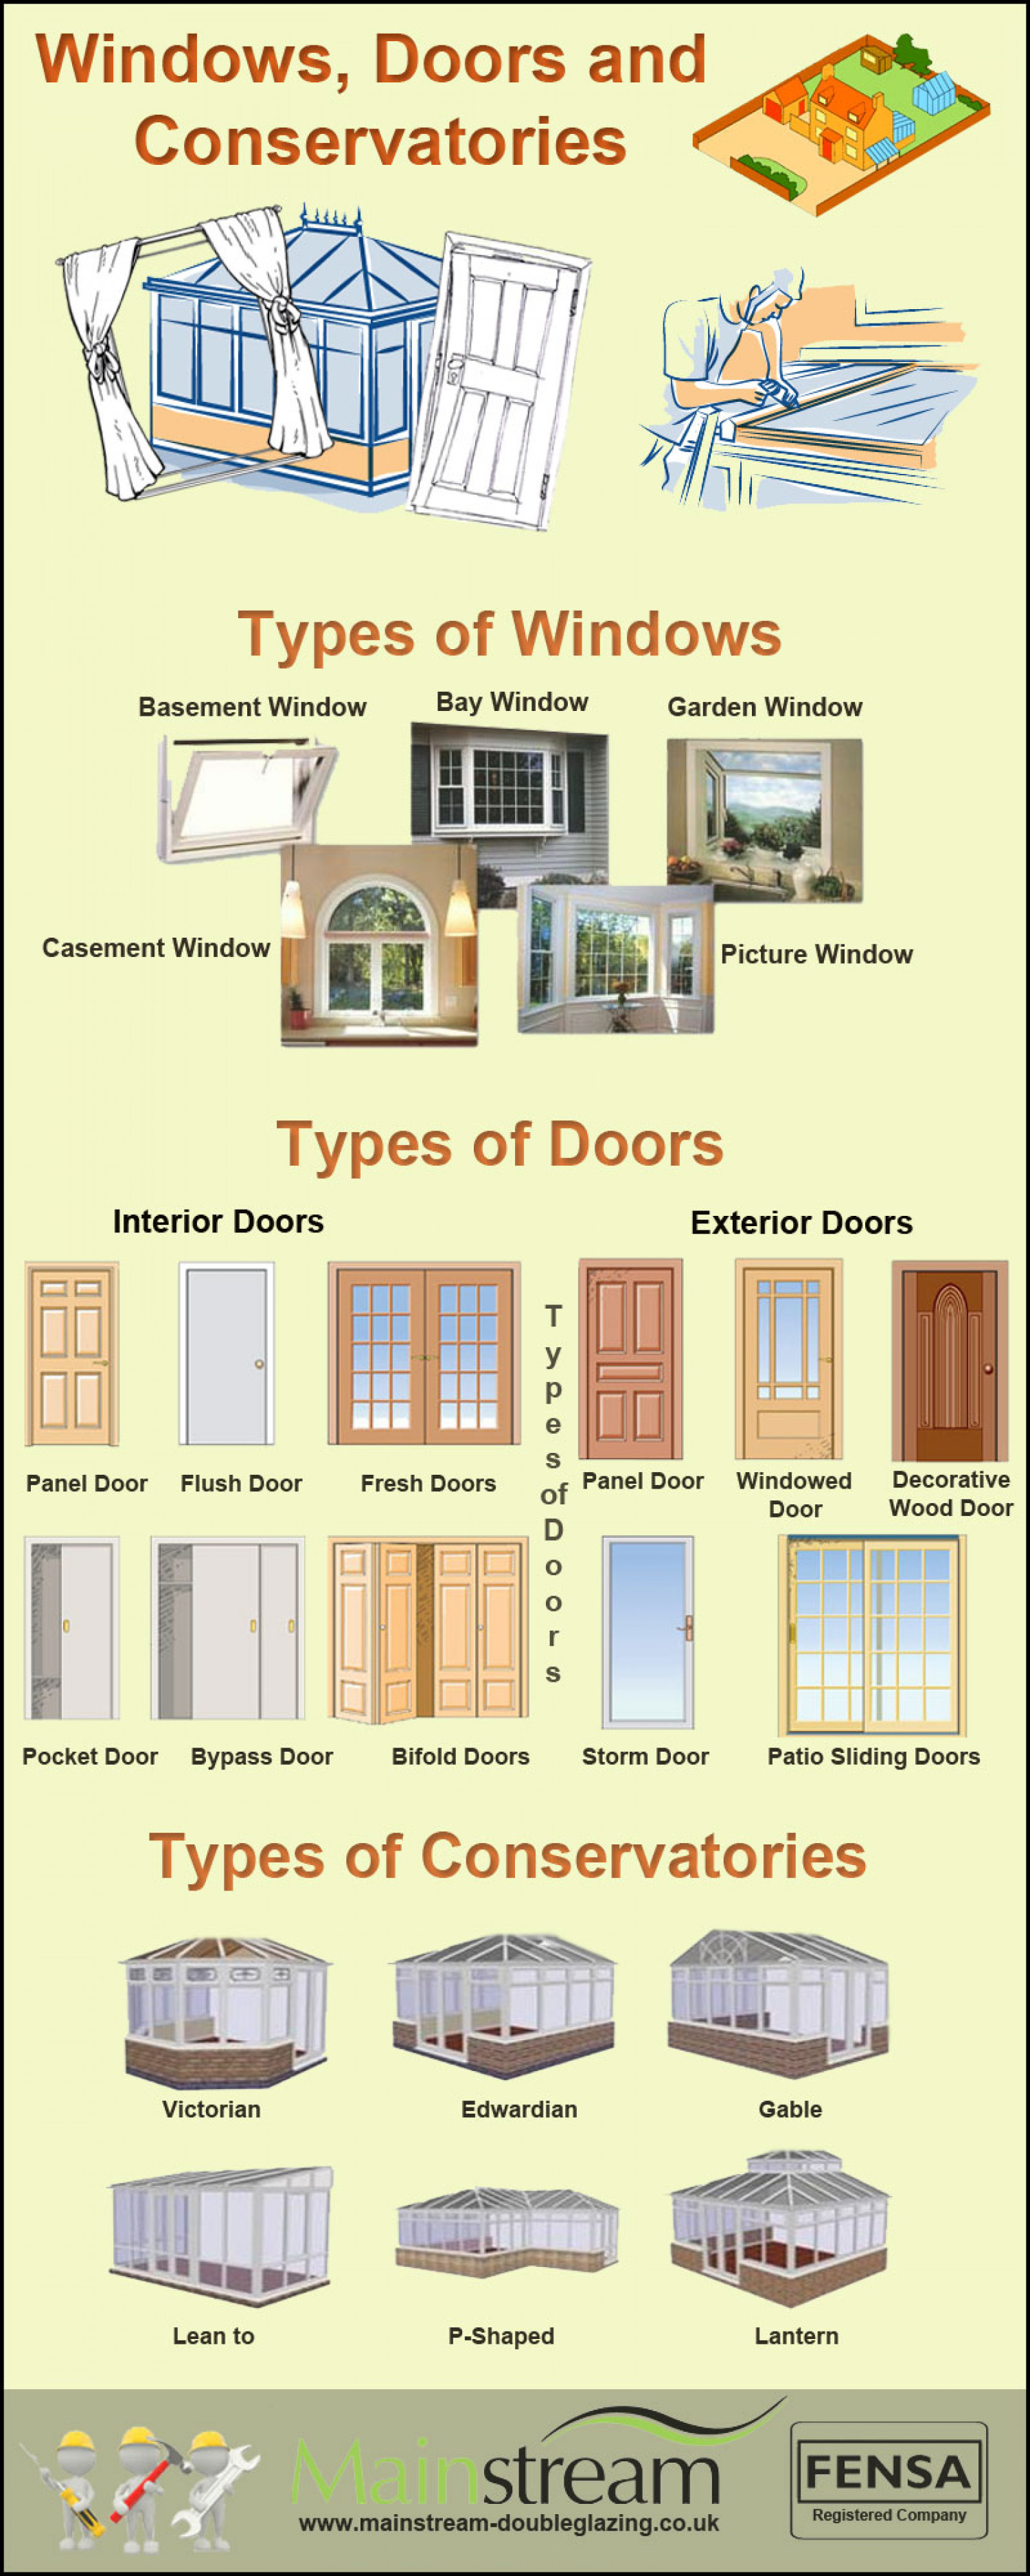 Windows, doors and conservatories Infographic